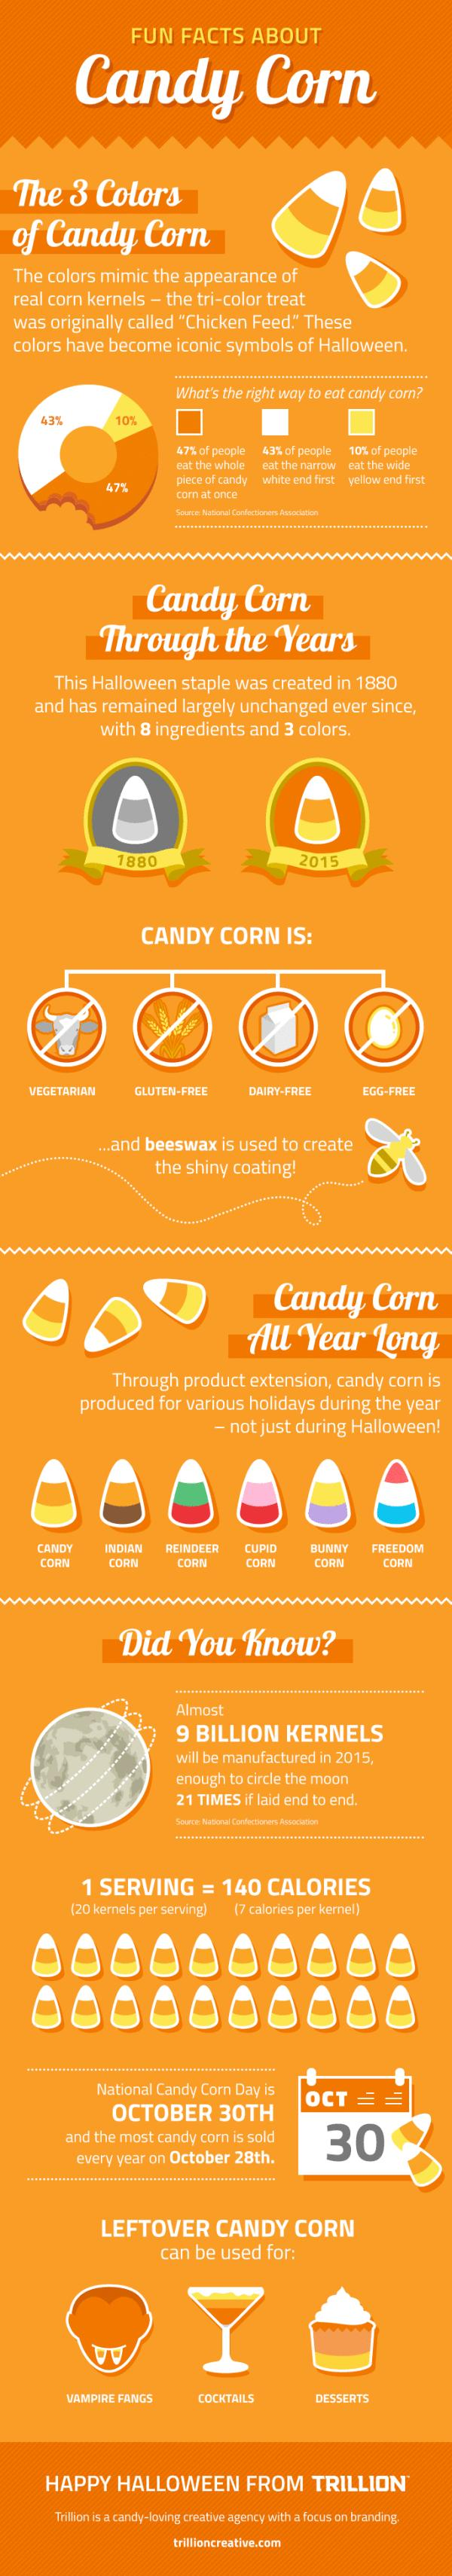 Fun Facts About Candy Corn